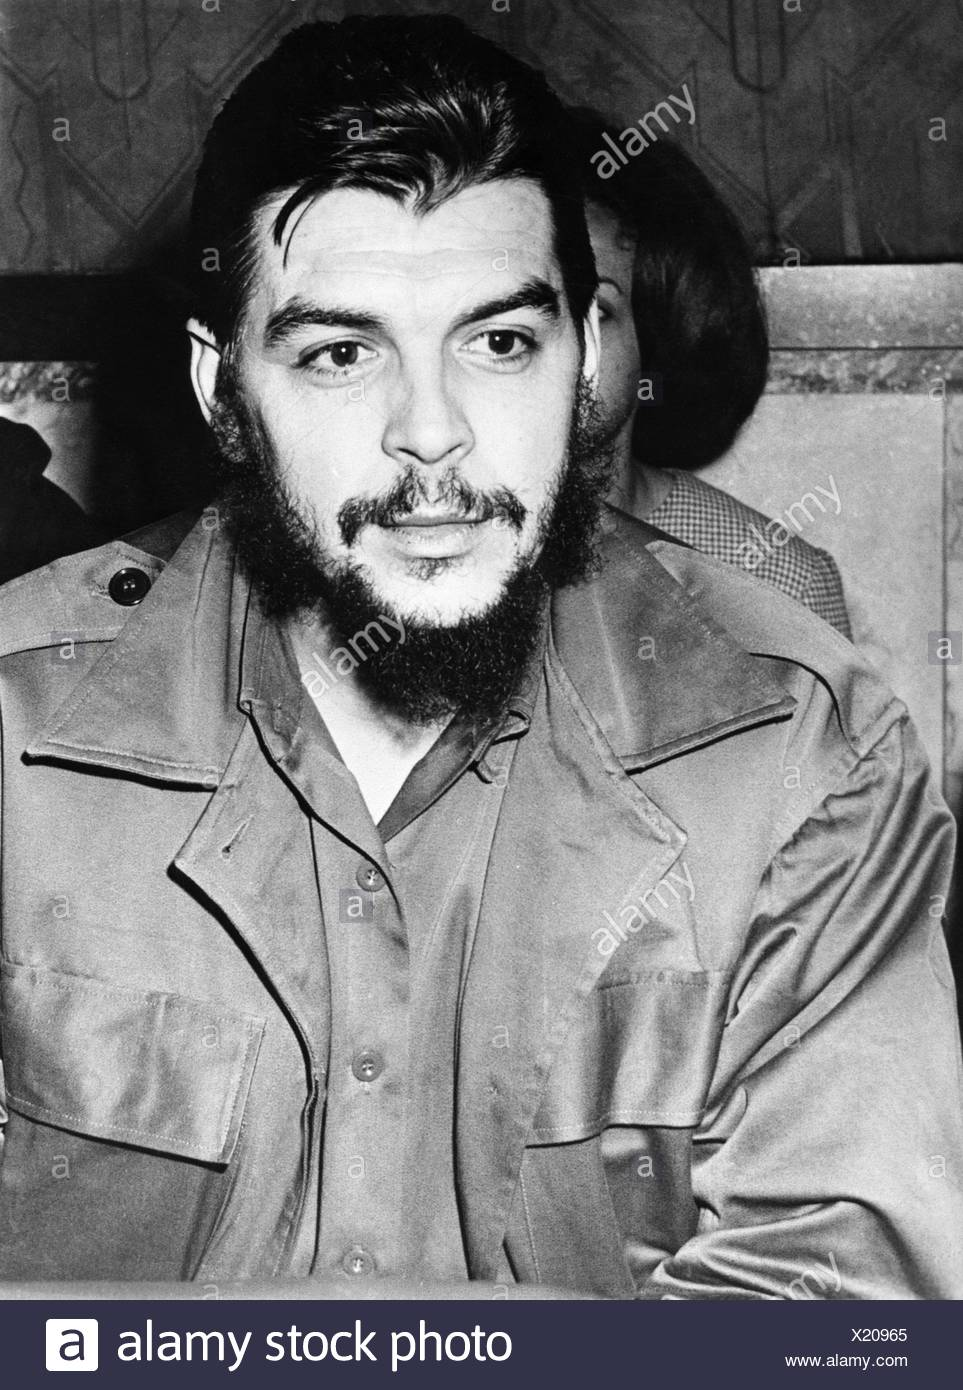 Che Guevara Photos Che Guevara Images Page 2 Alamy